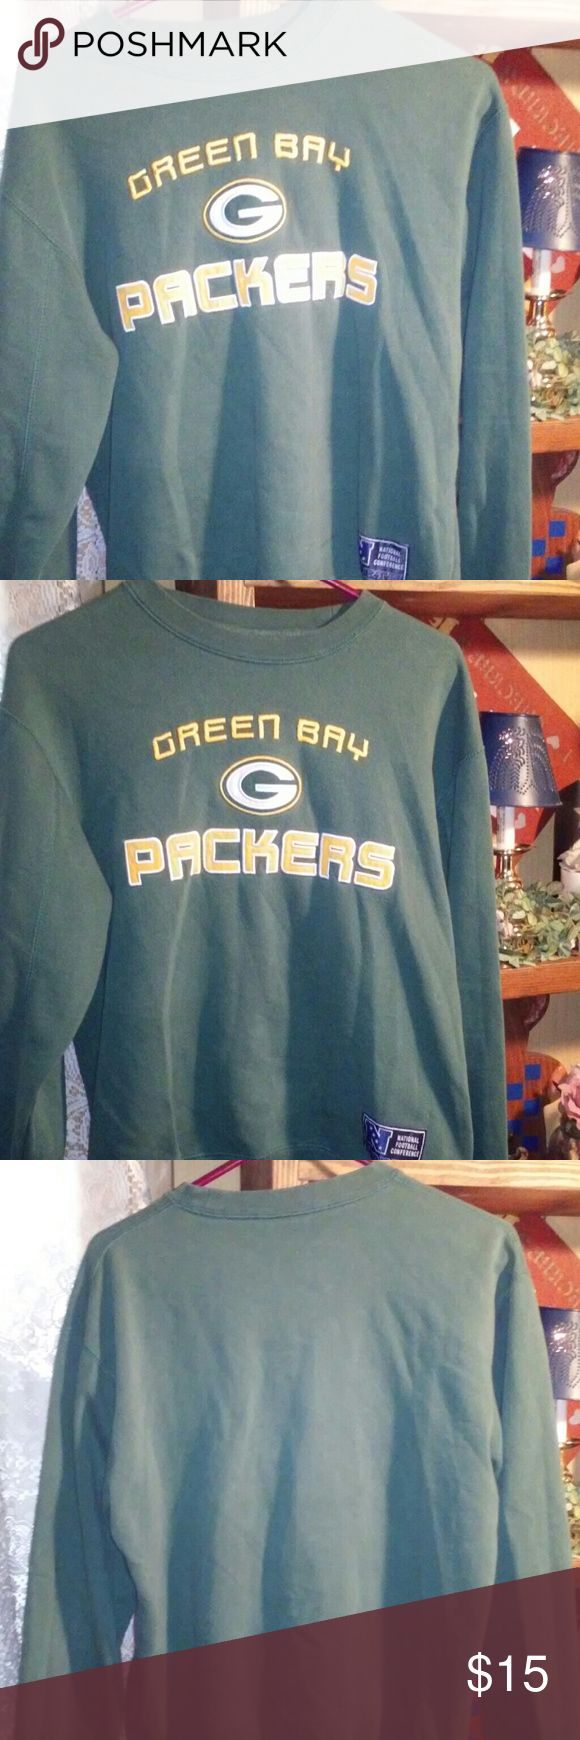 🏈🏈Soft Mens Green Bay Packers Sweatshirt🏈🏈 This is a mens small- medium Green bay packers sweatshirt. The only flaw in this cozy sweatshirt is I removed the tag. ( My skin can be to sensitive at times. Lol) It is warm and cozy. Perfect for the upcoming fall!!!🎃 Shirts Sweatshirts & Hoodies